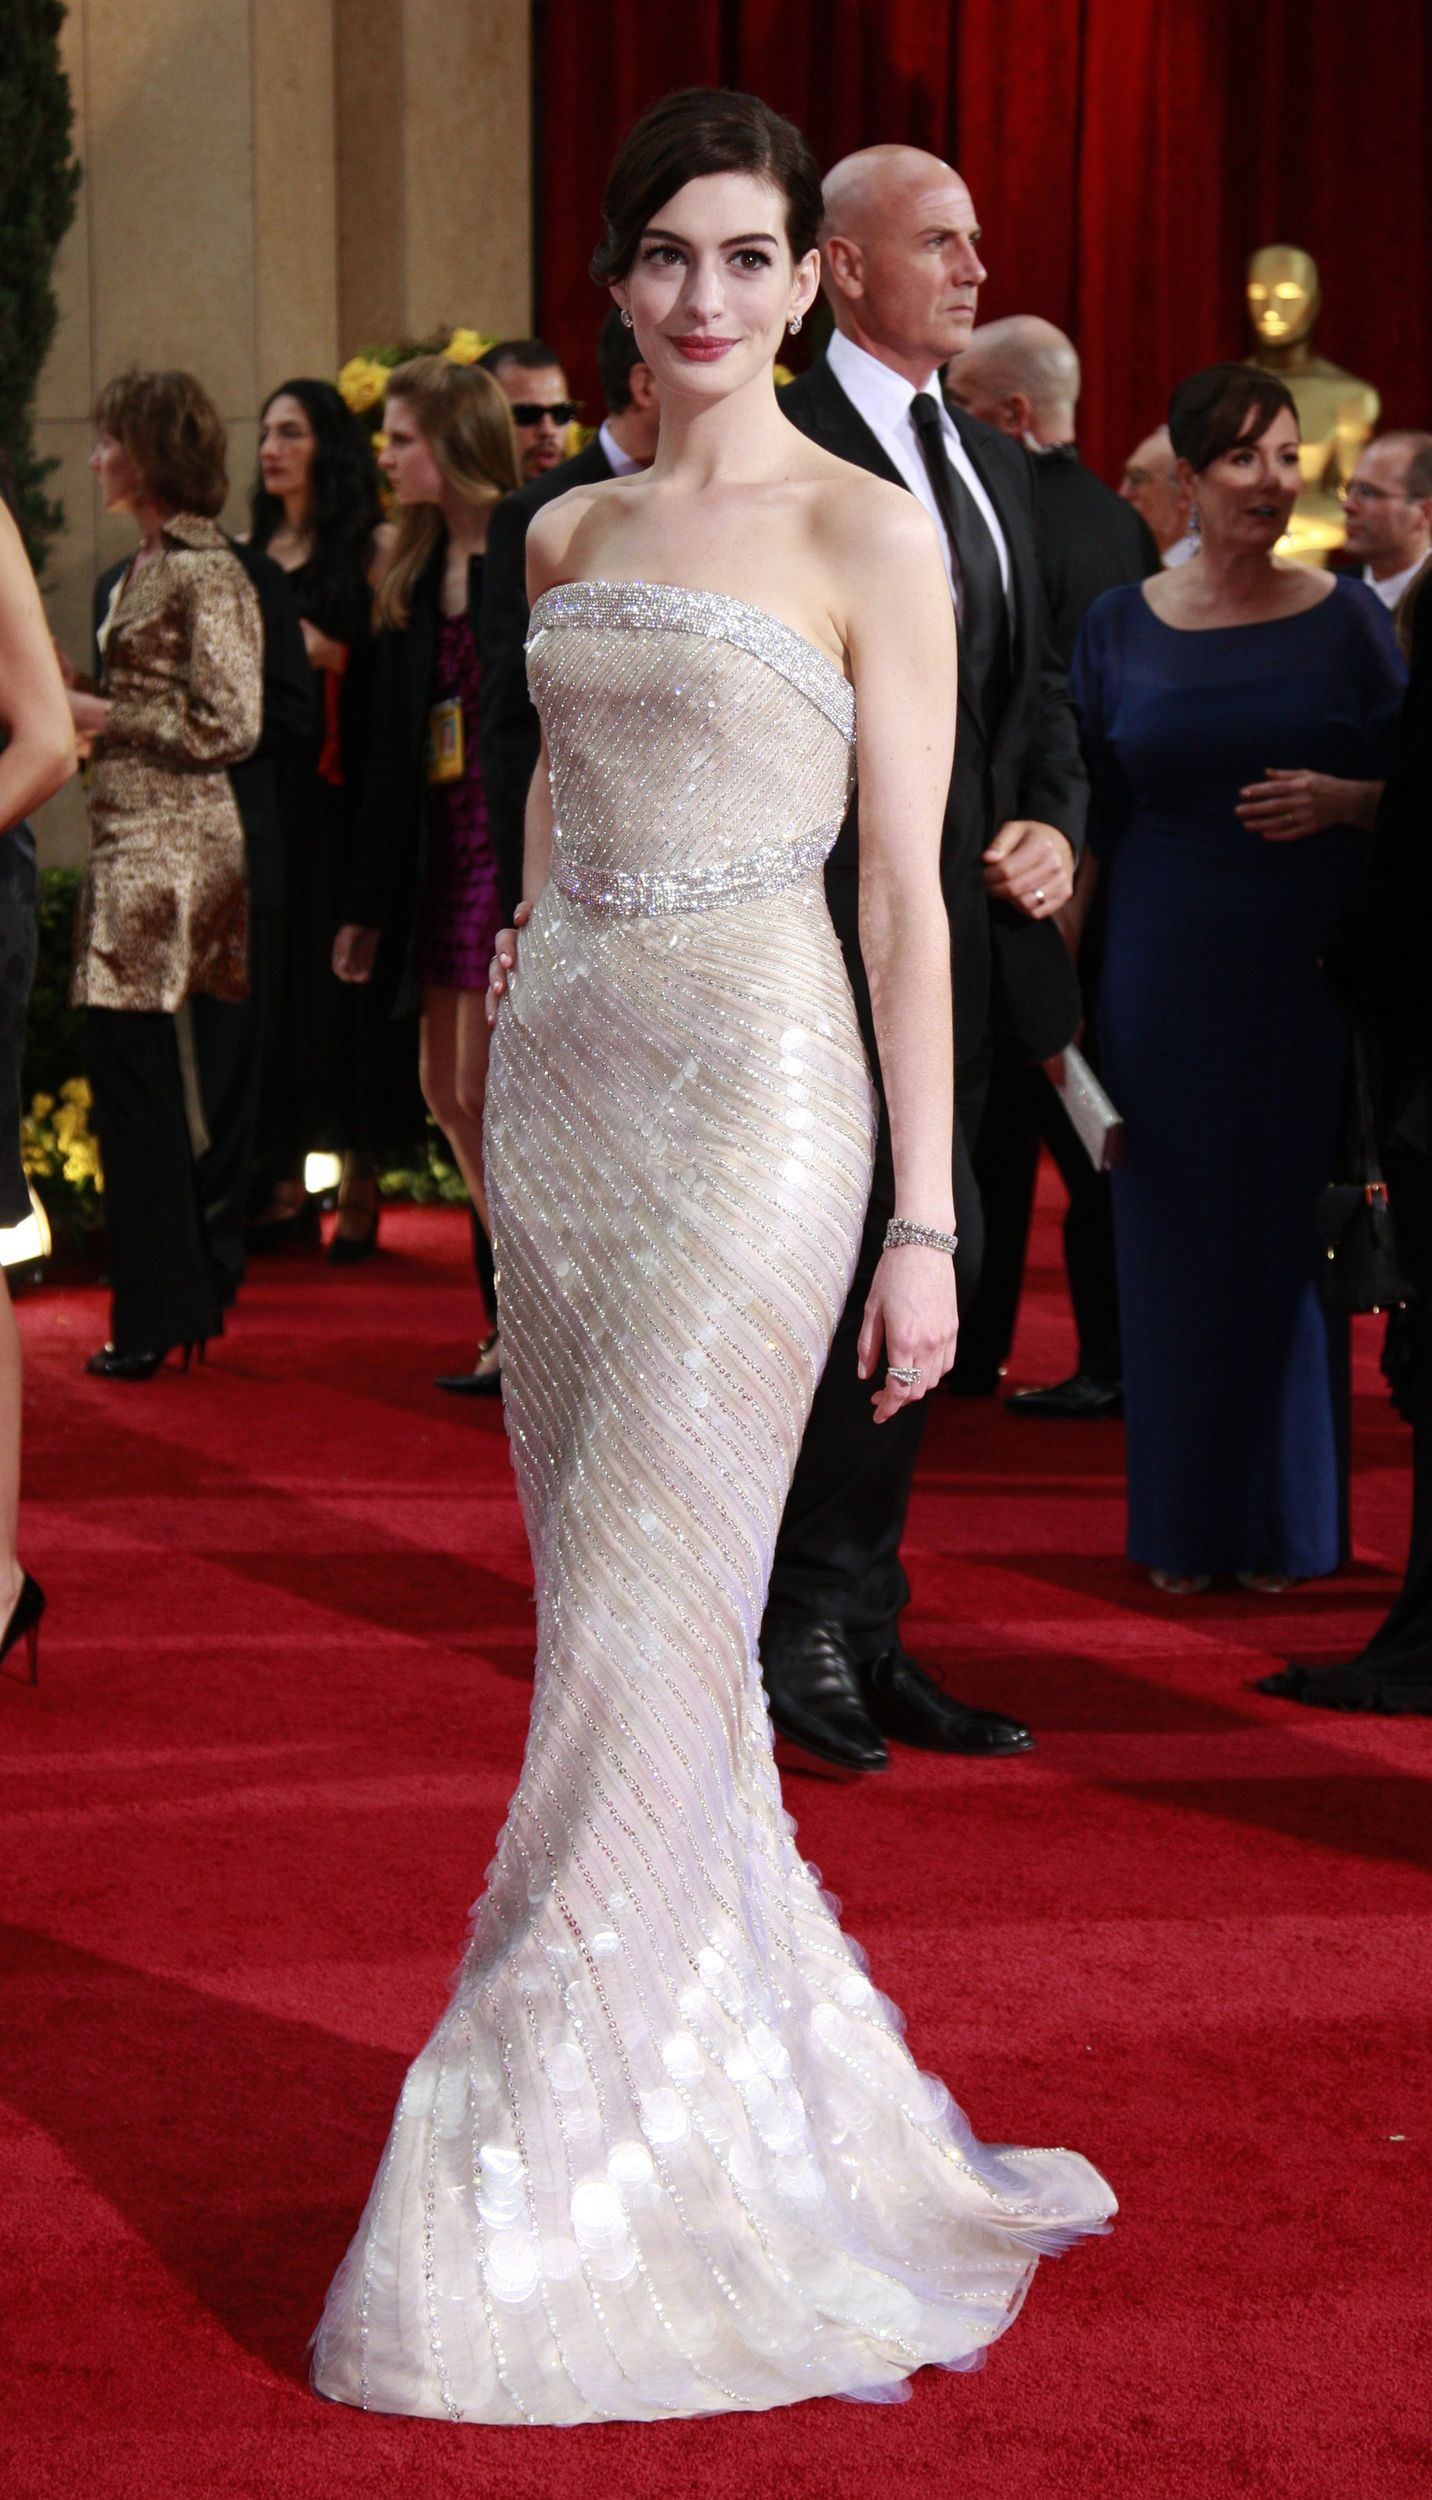 Anne Hathaway sparkles at the 2018 Oscars in glittering Givenchy gown | Pretty gowns, Oscar gowns, Oscar dresses